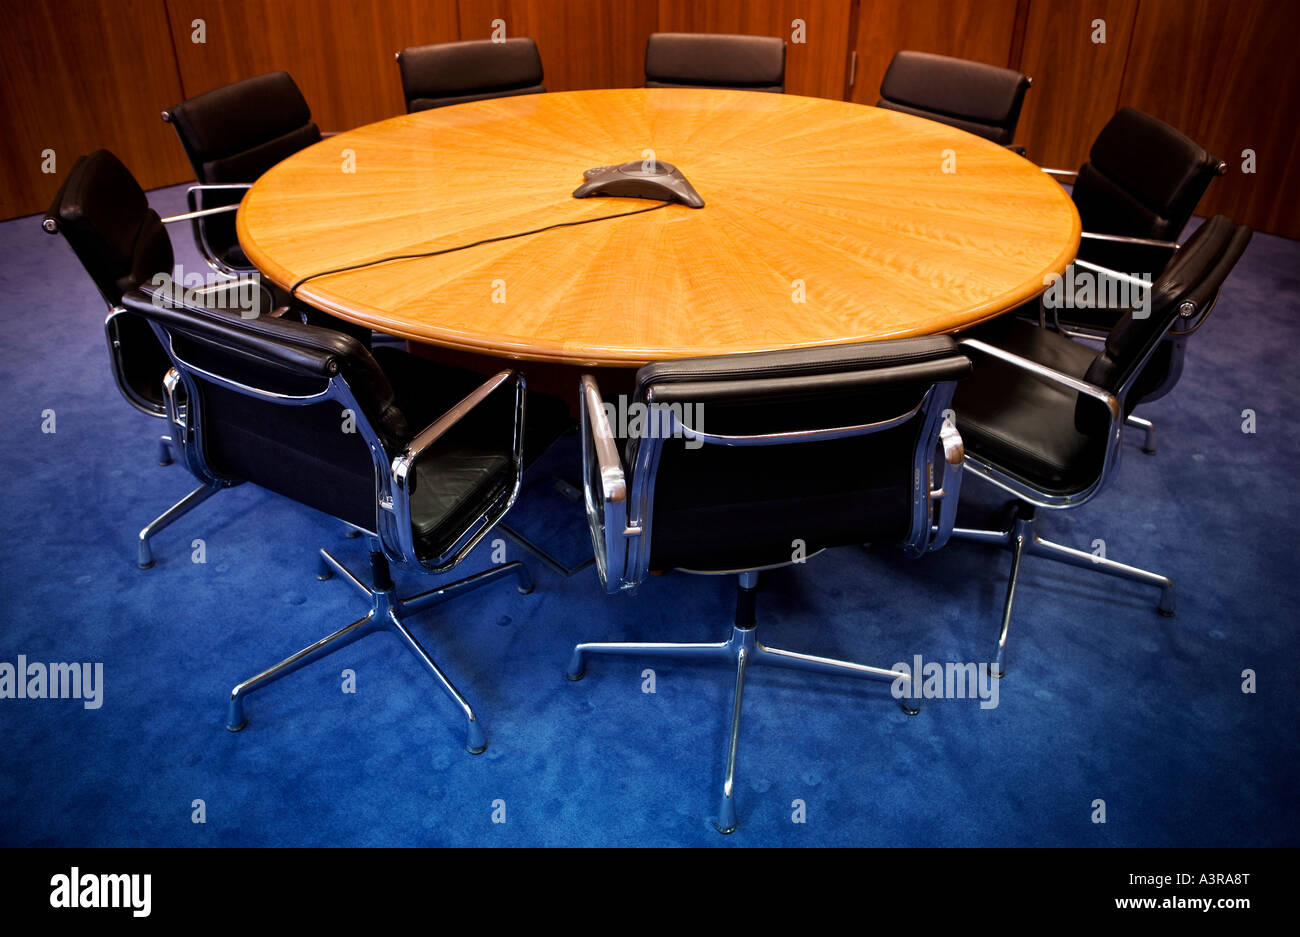 Meeting Room Tables Empty Meeting Room With Round Table And Chairs Stock Photo